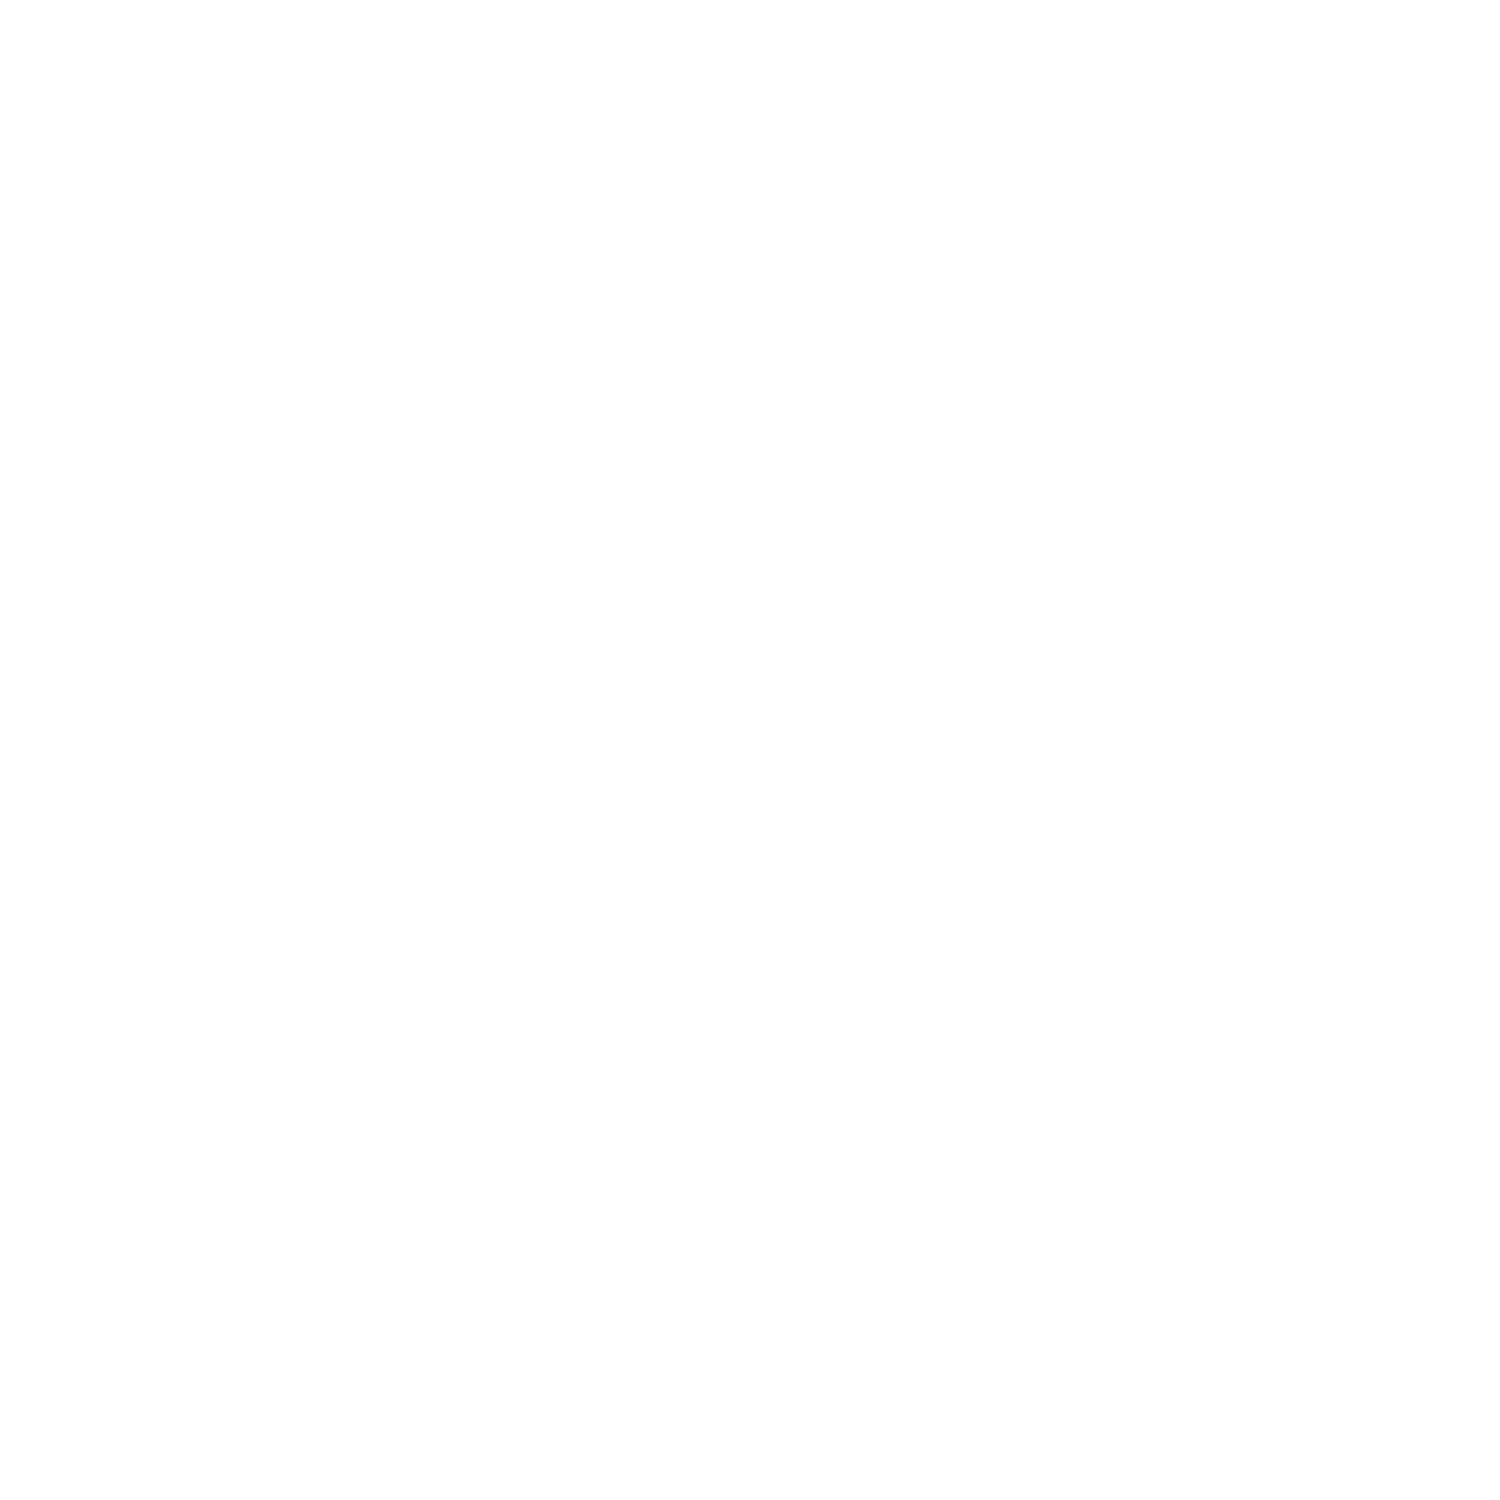 Cathy Williams